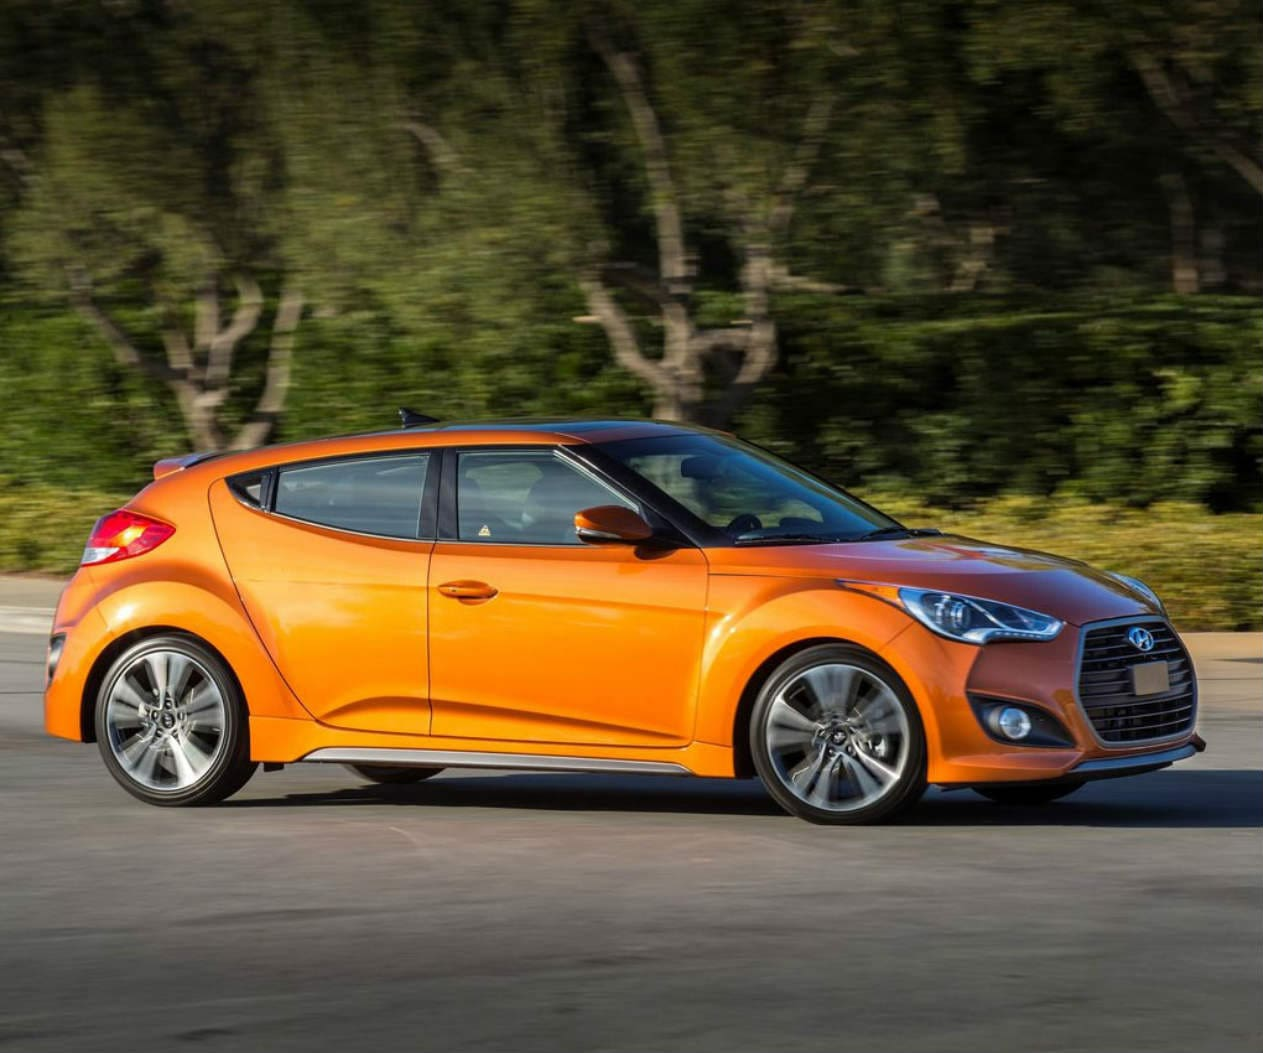 2017 Hyundai Veloster: At Long Last, the Wait is Over